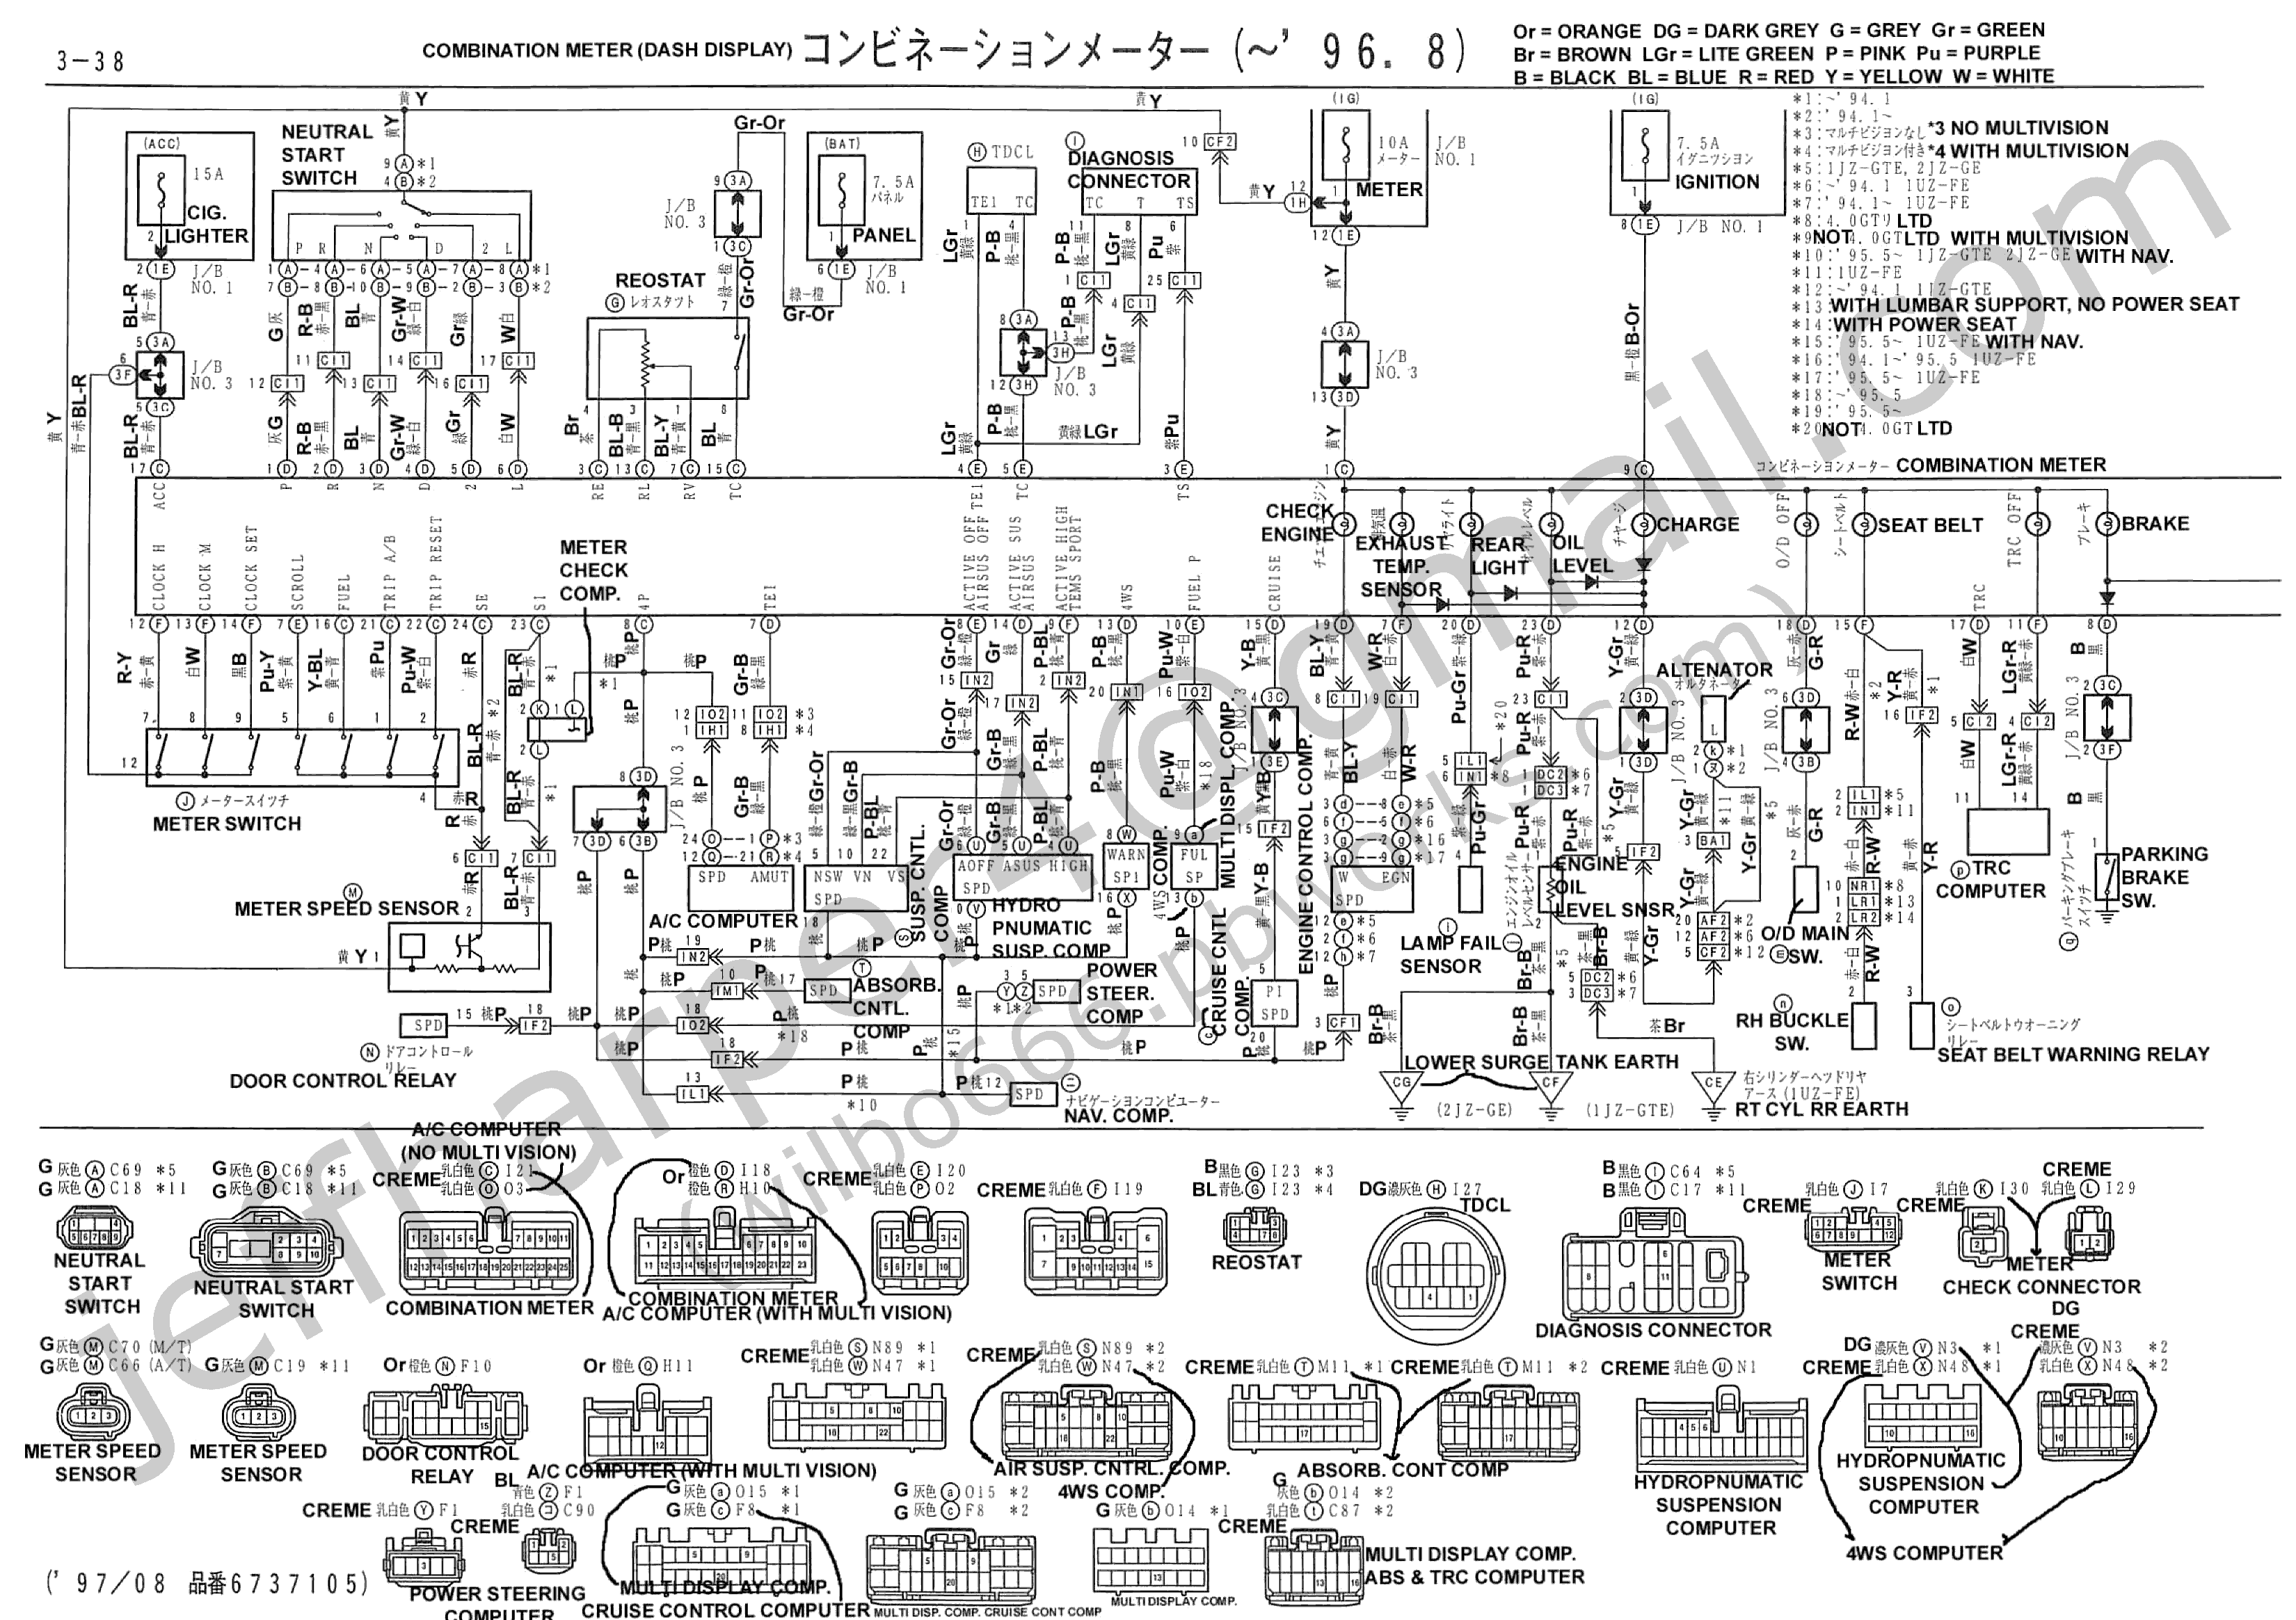 xZZ3x Electrical Wiring Diagram 6737105 3 38?resize\\\\\\\\\\\=665%2C469 1999 pontiac montana wiring diagram ke 2003 pontiac bonneville 2006 pontiac g6 wiring diagram at bayanpartner.co